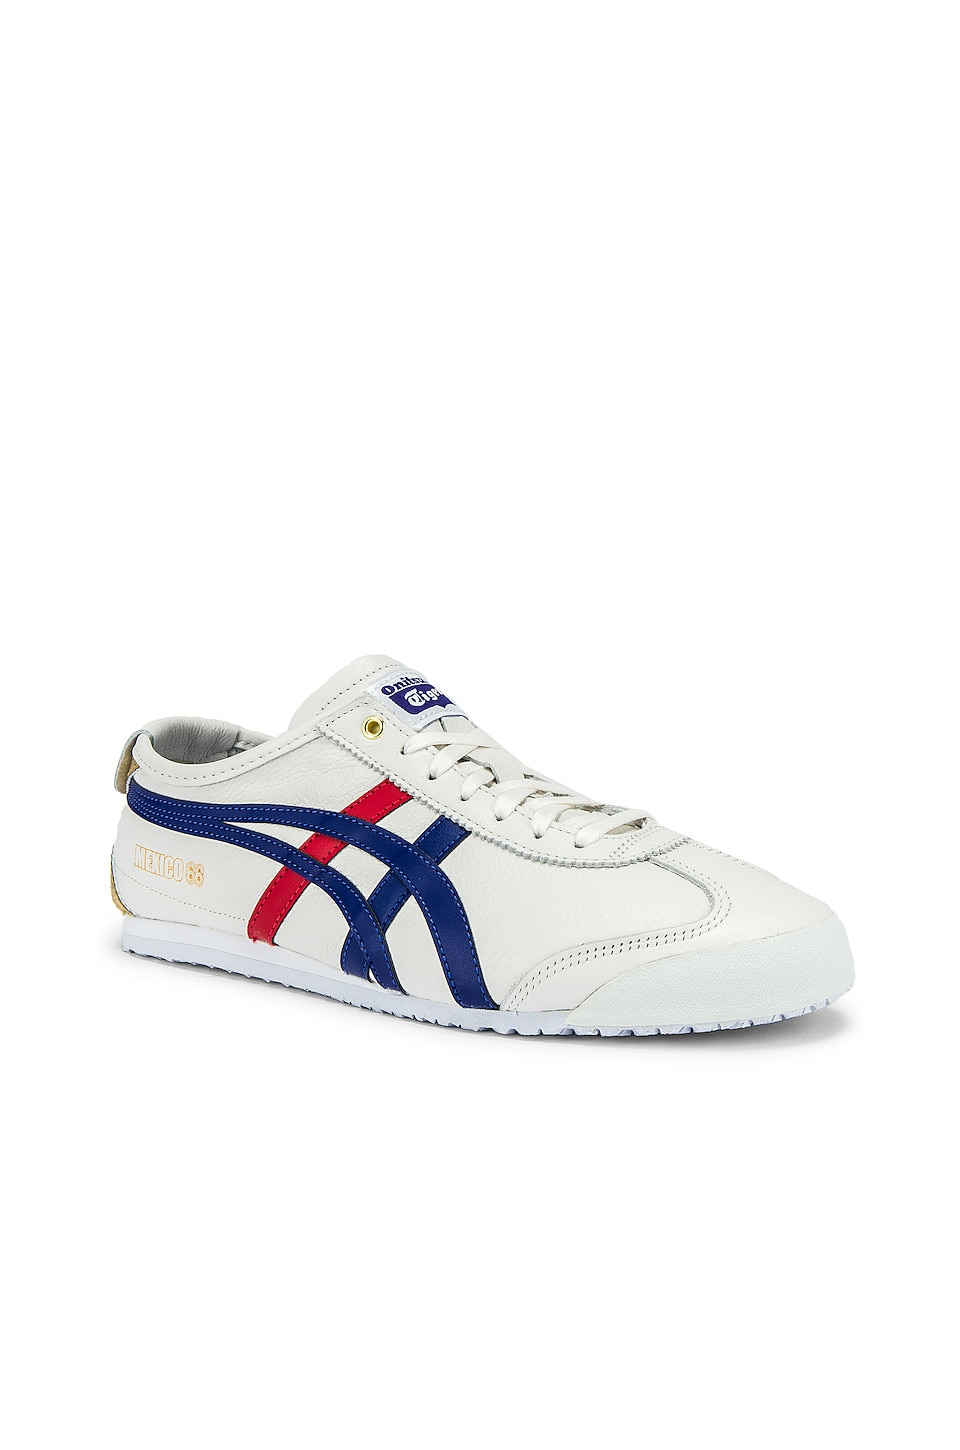 Onitsuka Tiger Mexico 66 in White & Dark Blue